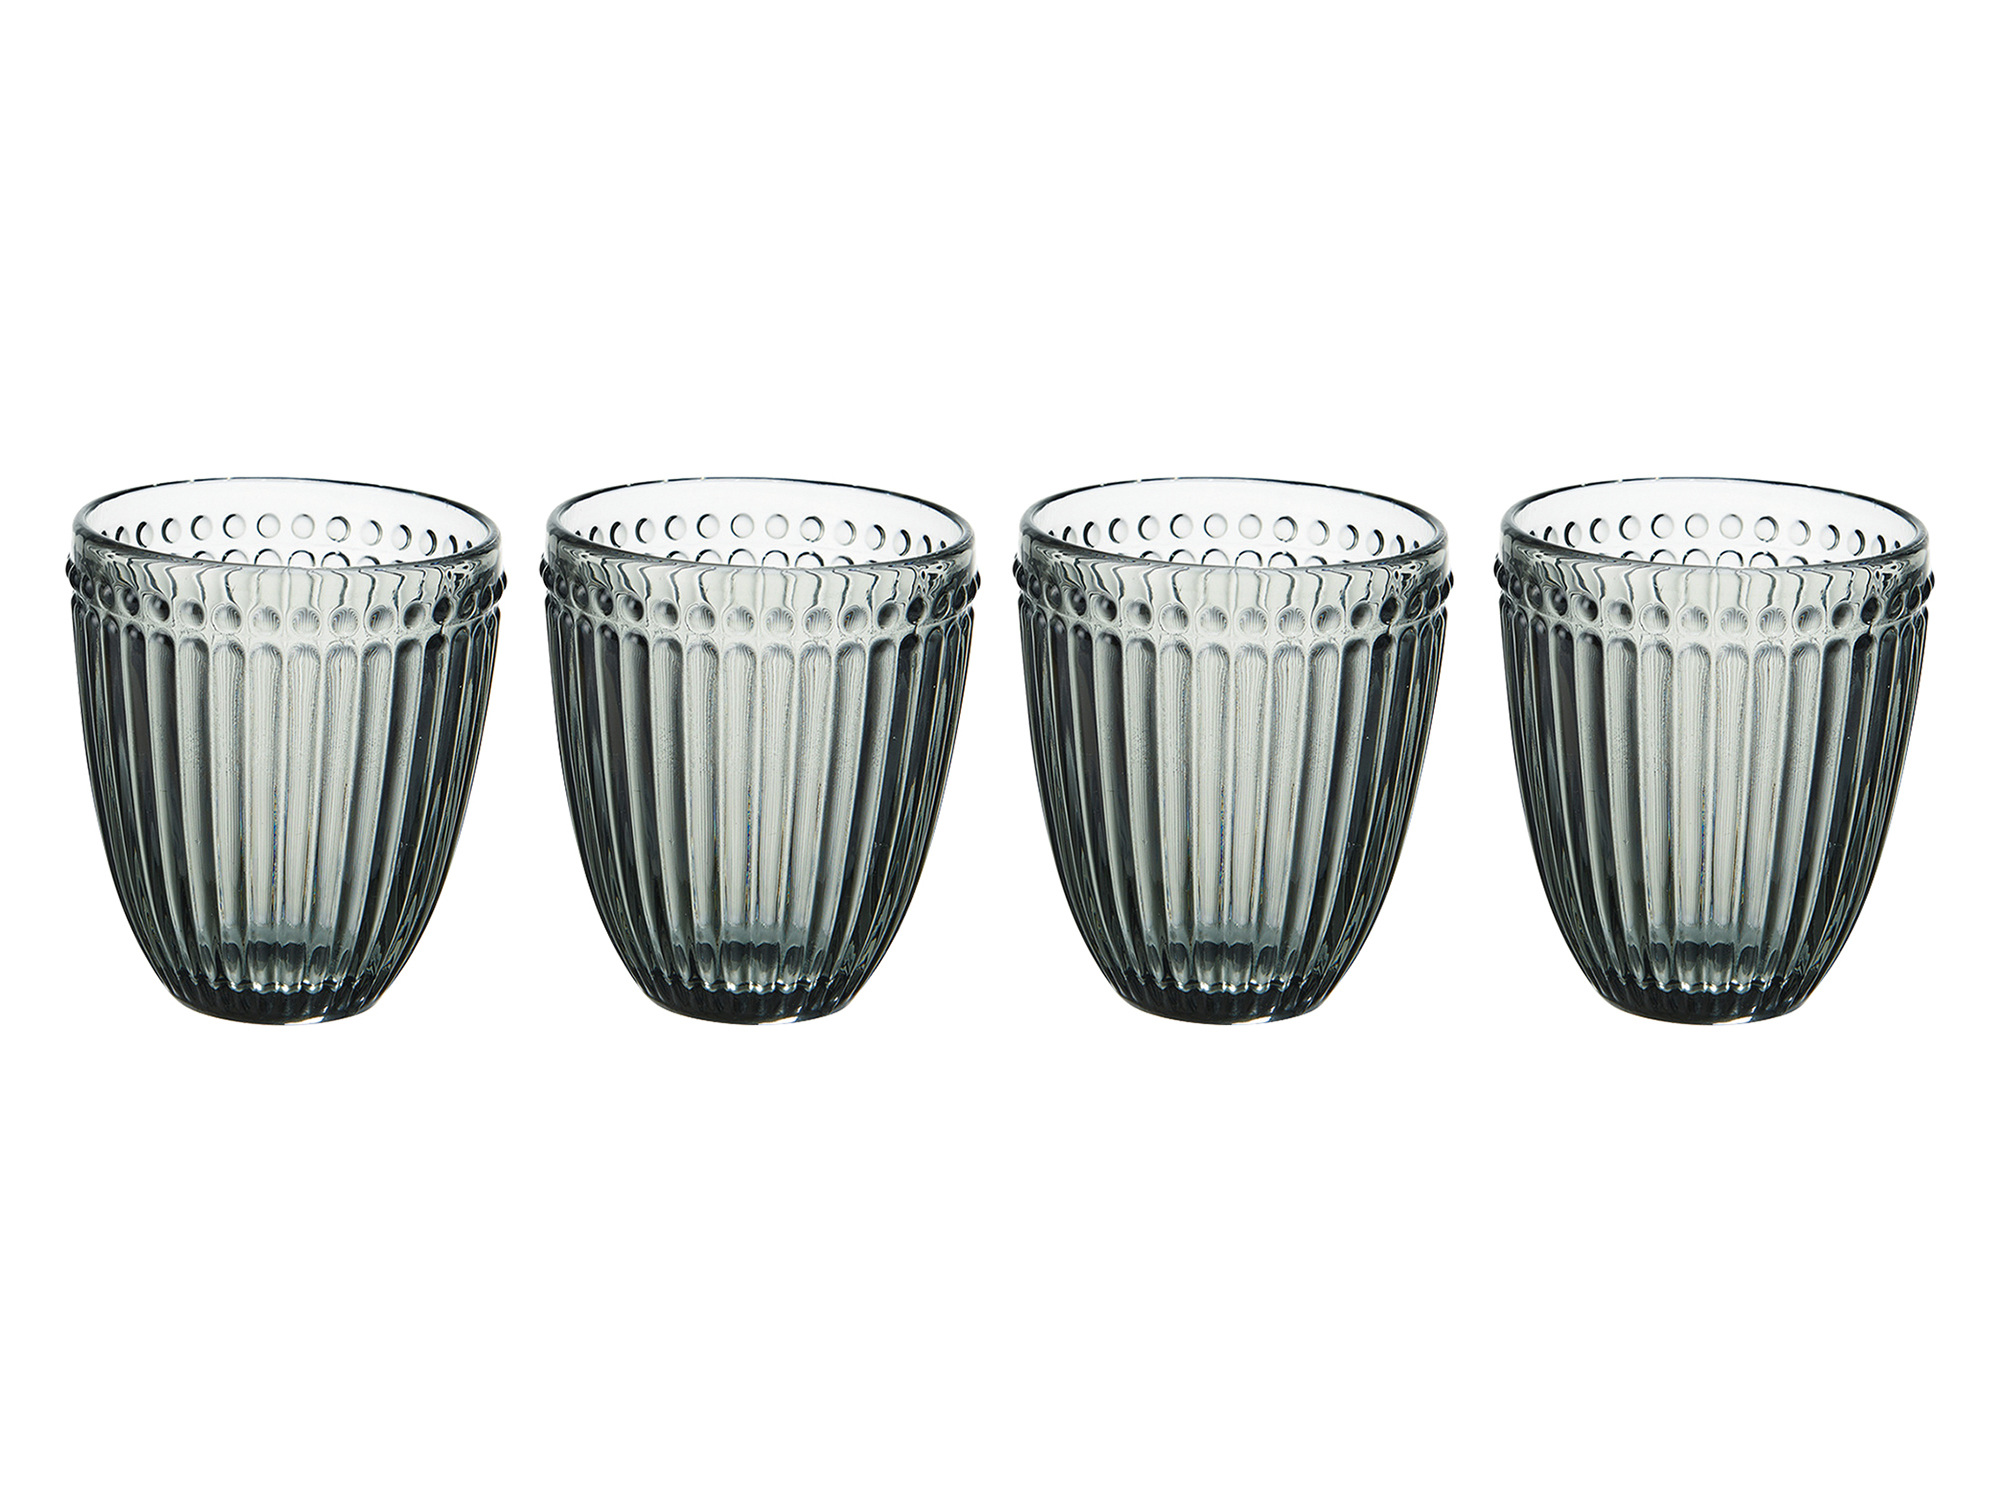 Mikasa Italian Countryside Set Of 4 Double Old Fashion 10Oz Glasses Smoke